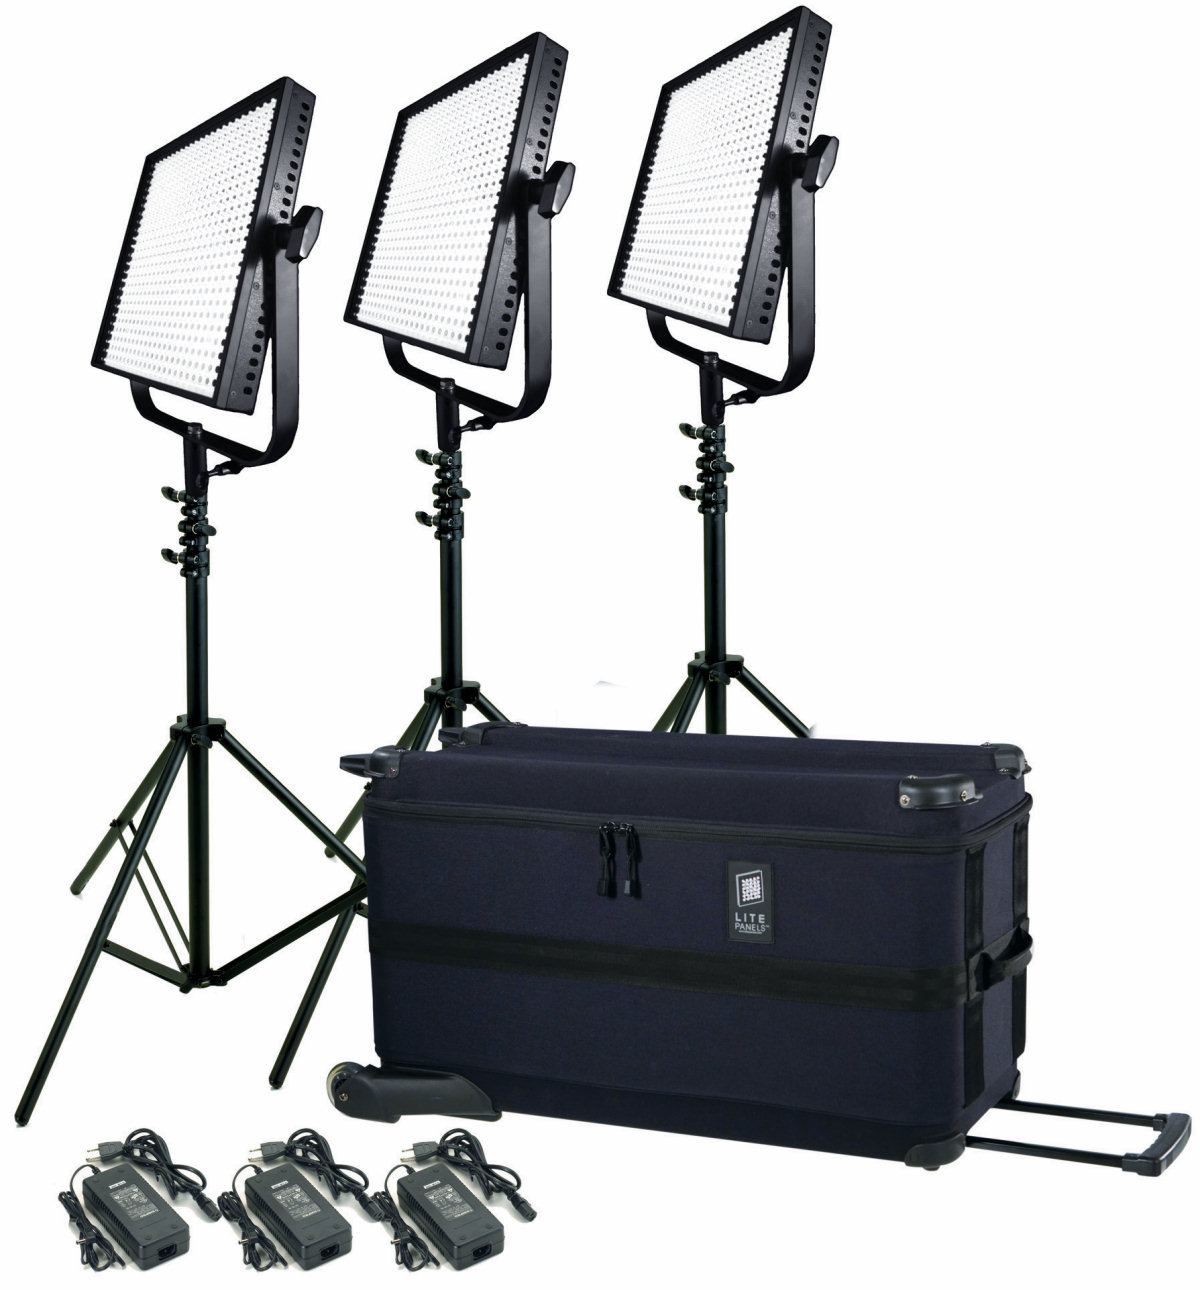 Litepanels New Ls Traveler Led Lighting Kits